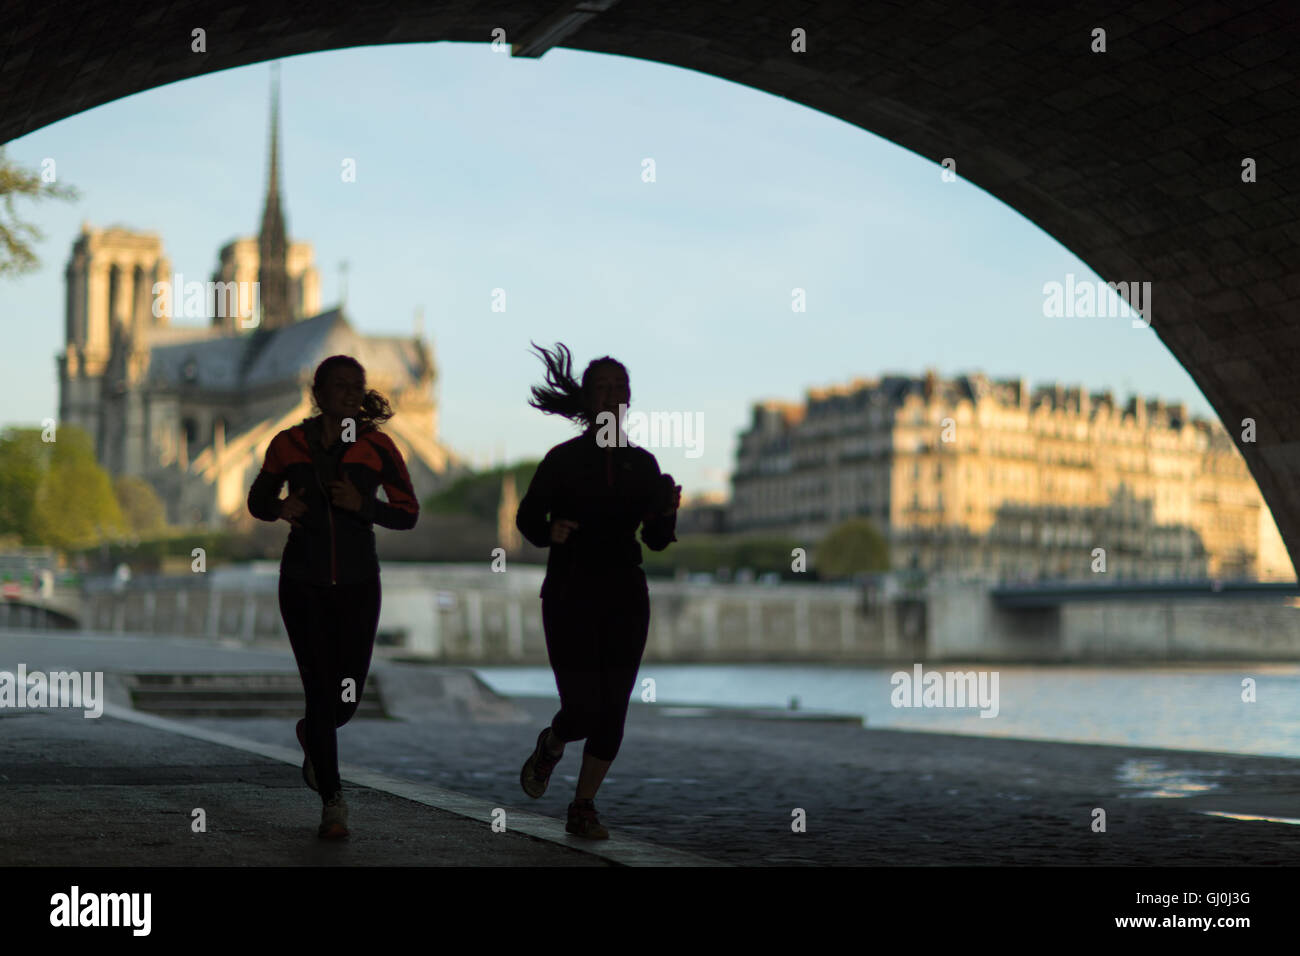 joggers running under the Pont de la Tournelle on the left bank of the River Seine, Paris, France - Stock Image